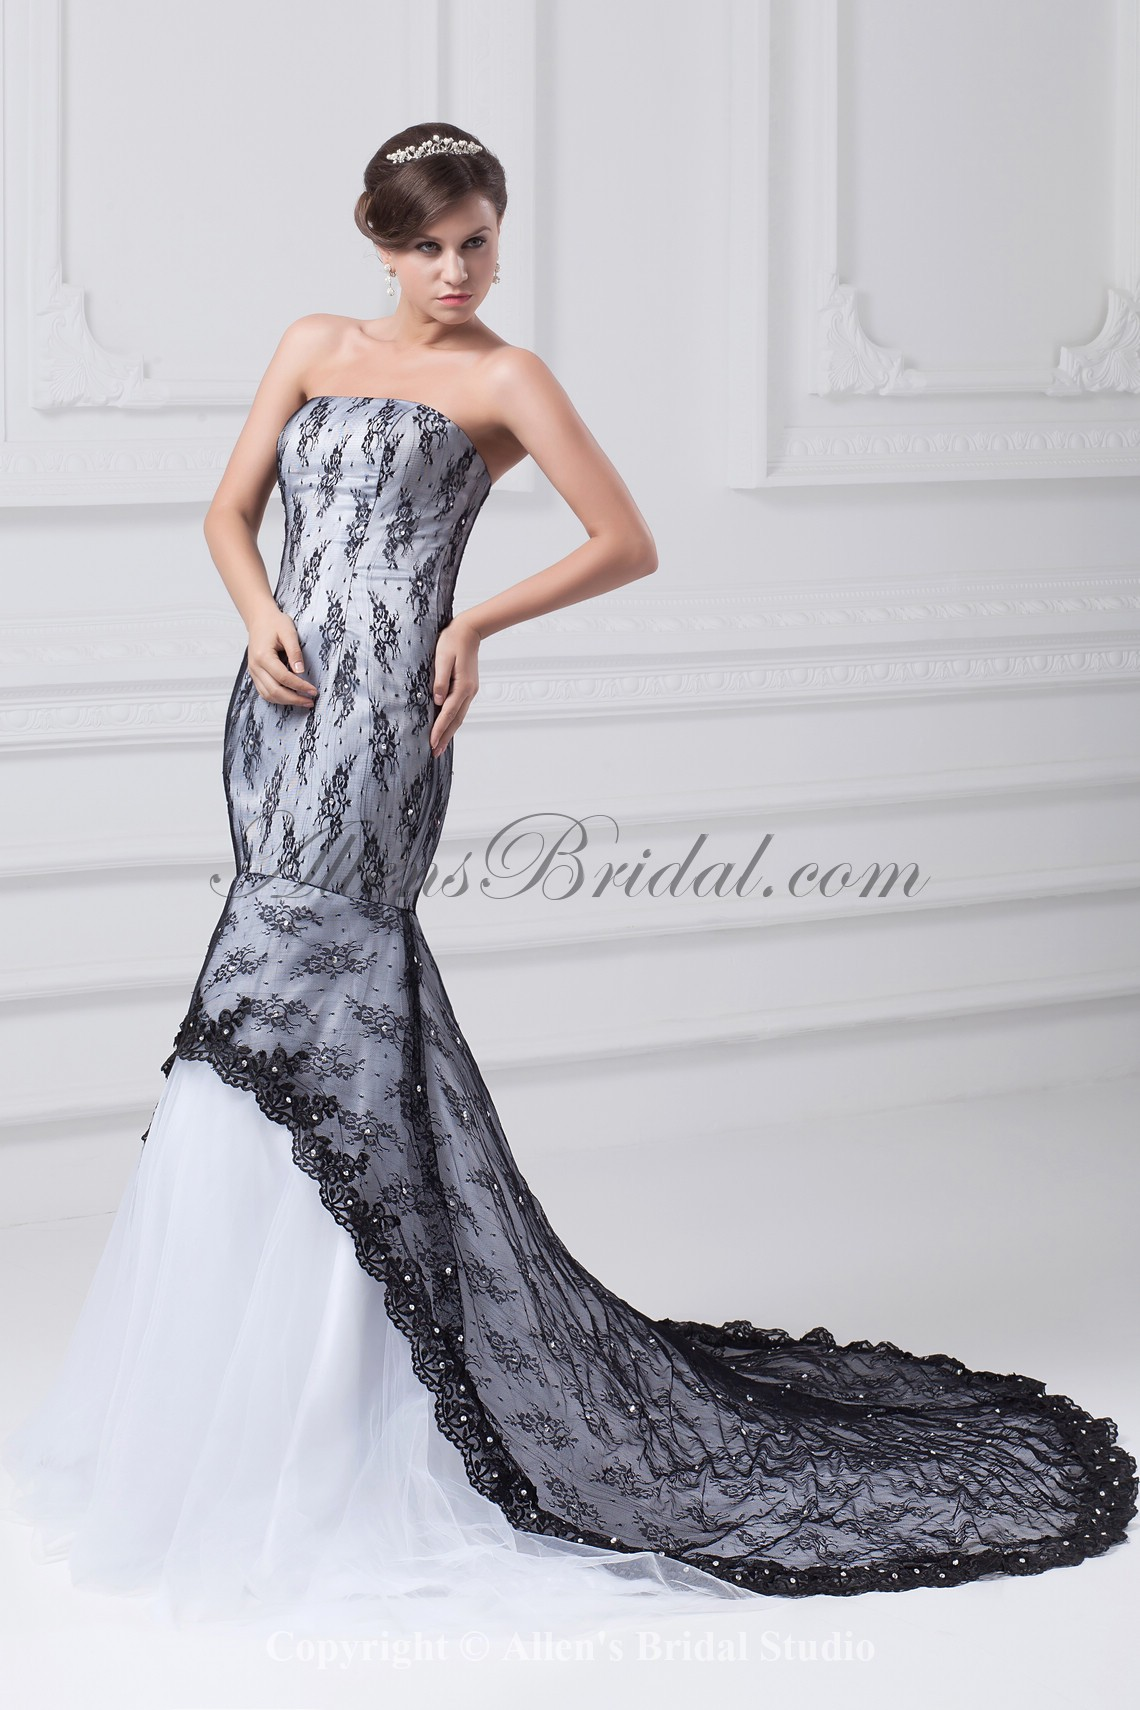 /883-7079/satin-and-lace-strapless-neckline-floor-length-mermaid-wedding-dress.jpg